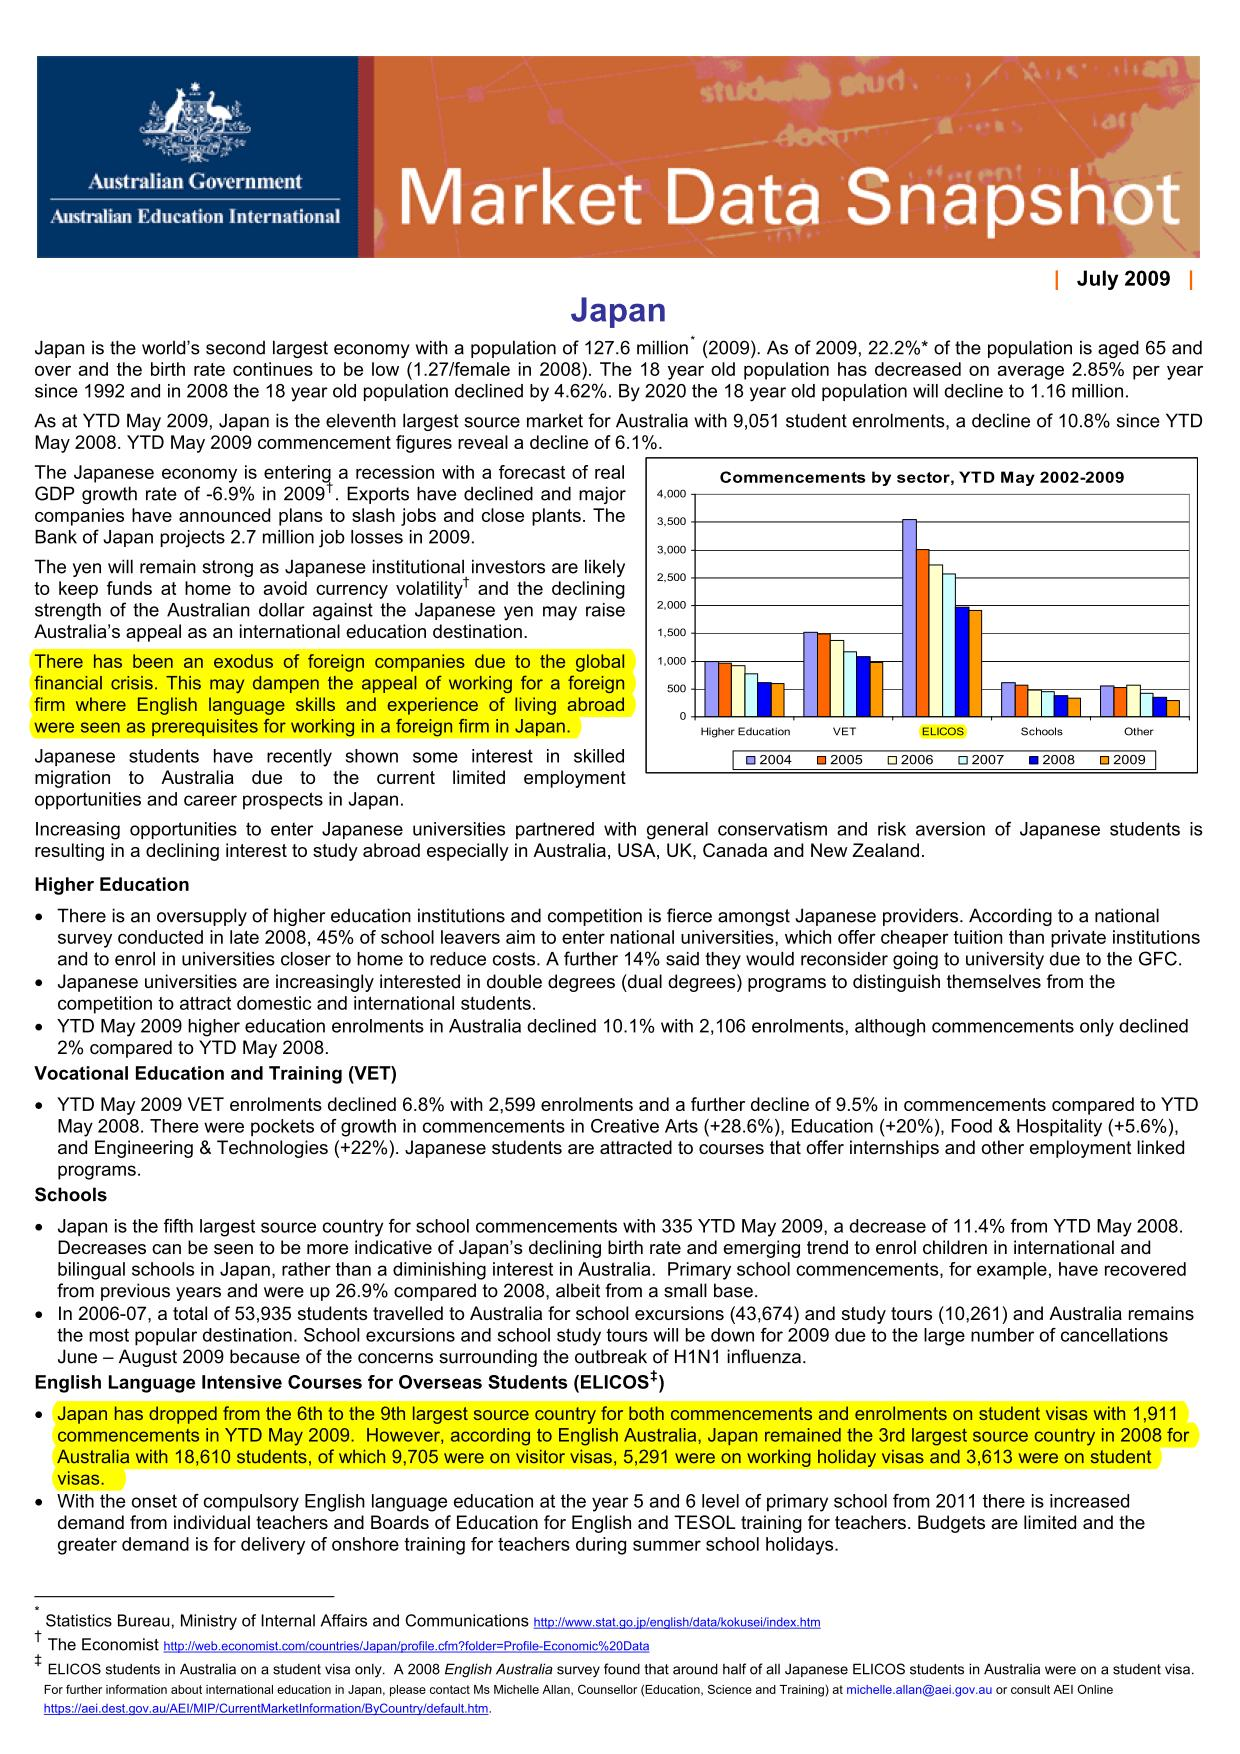 AEI Market Data Snap Shot Japan